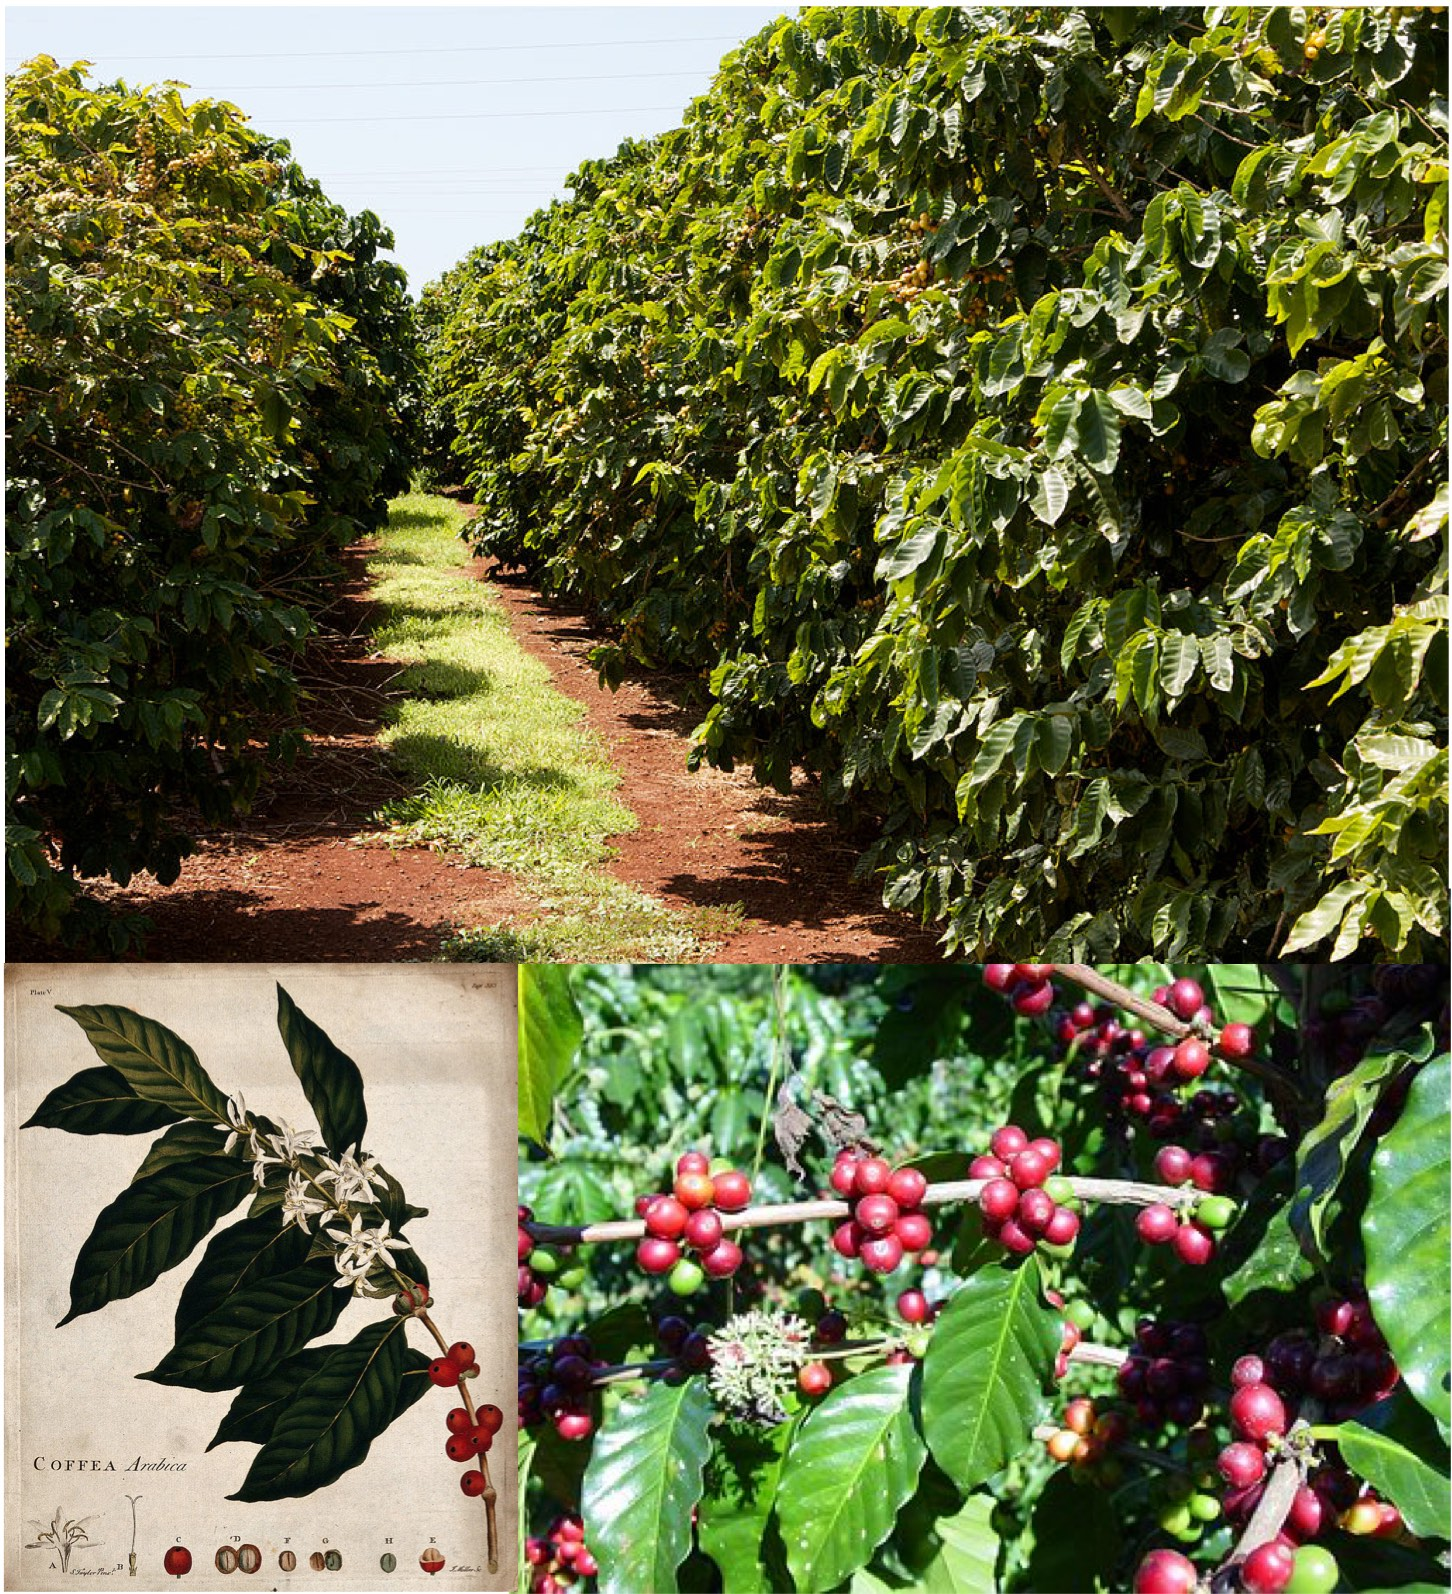 coffee plantation with close-up of coffee berries on plant